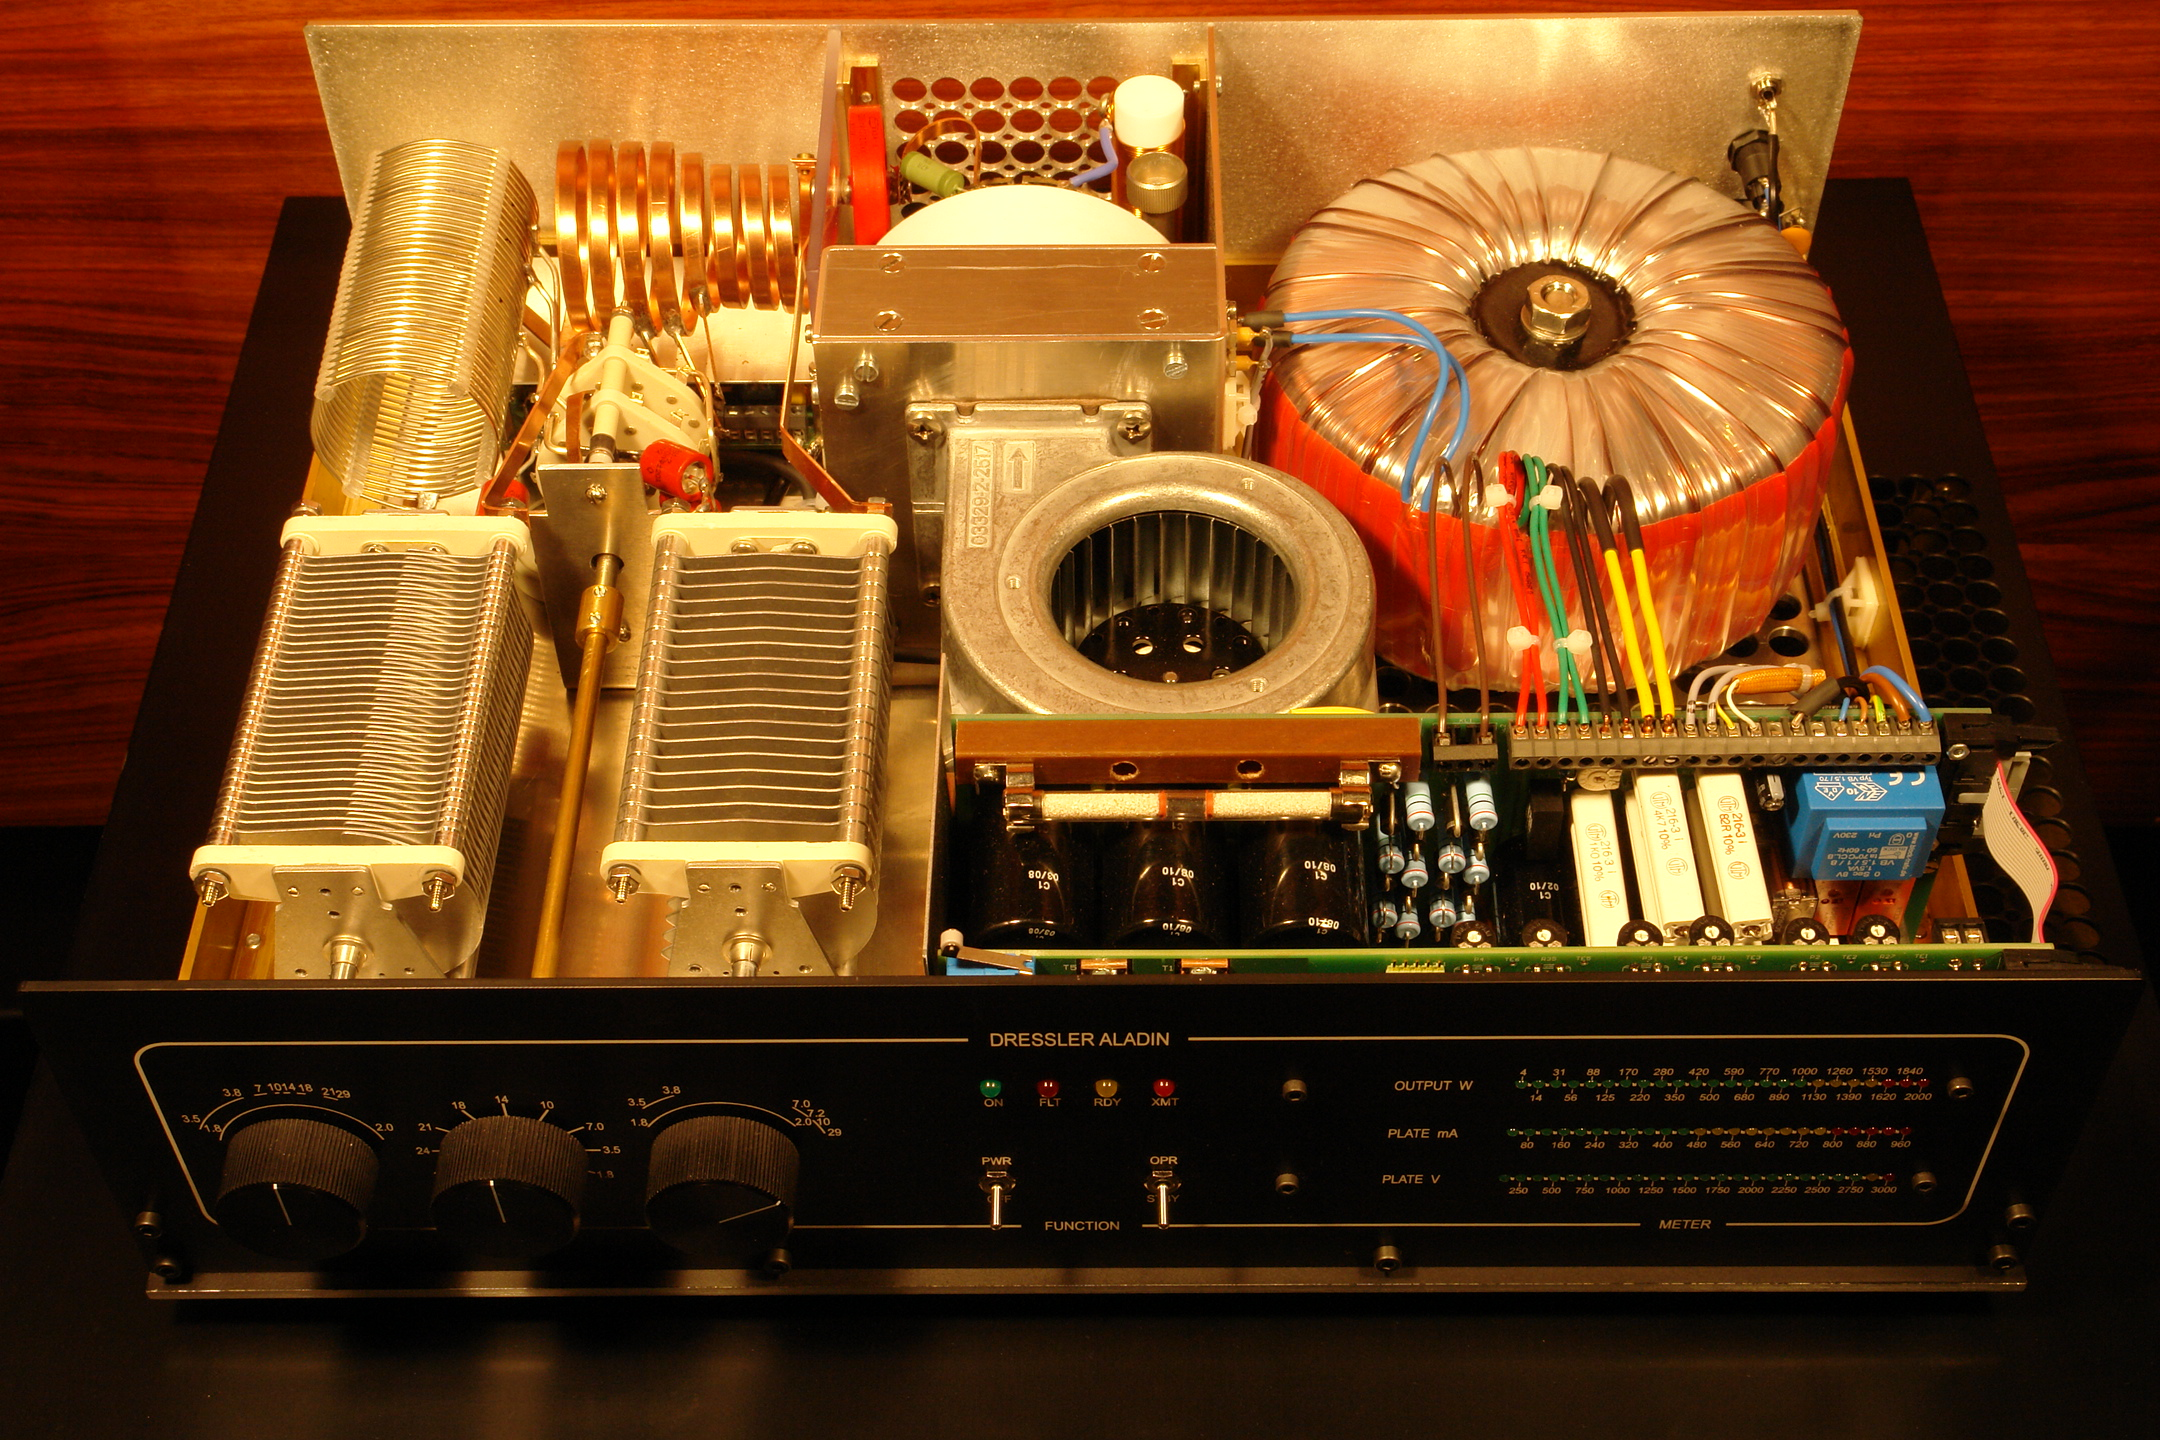 Dc9dz Project Aladin Power Amplifier Pa Using Gu74b